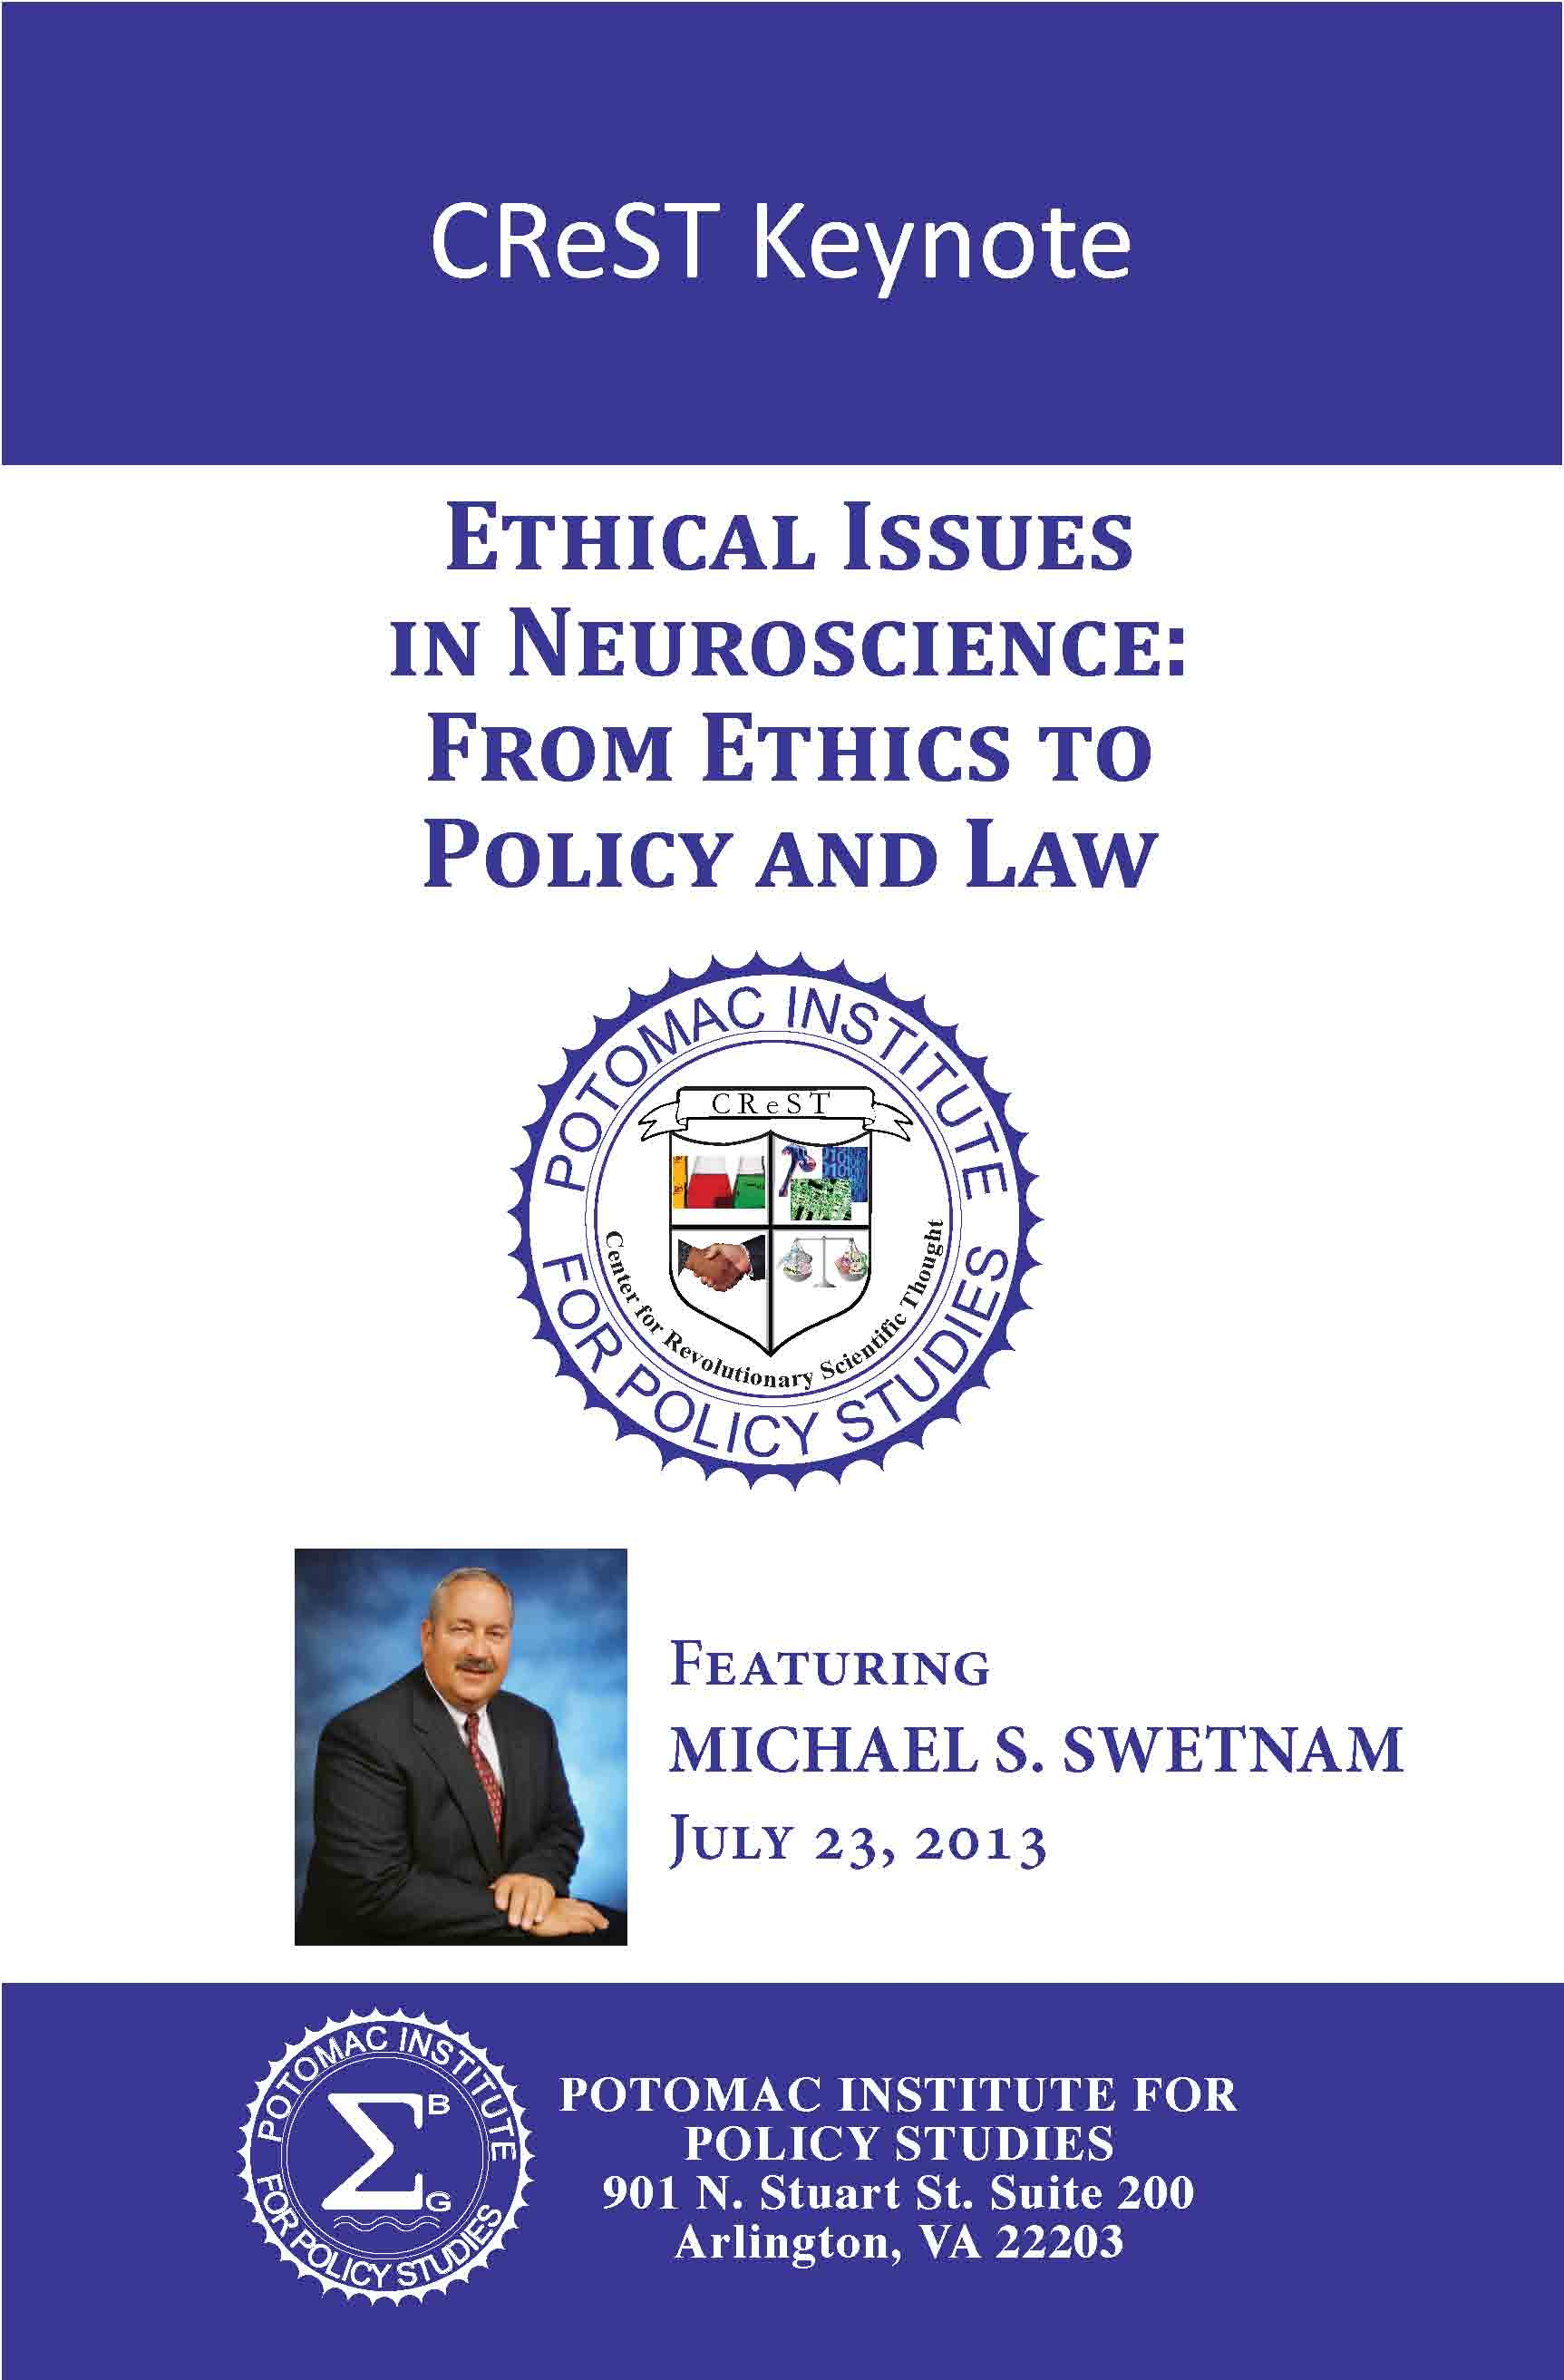 CreST Keynote - Ethical Issues in Neuroscience: From Policy to Science and Law